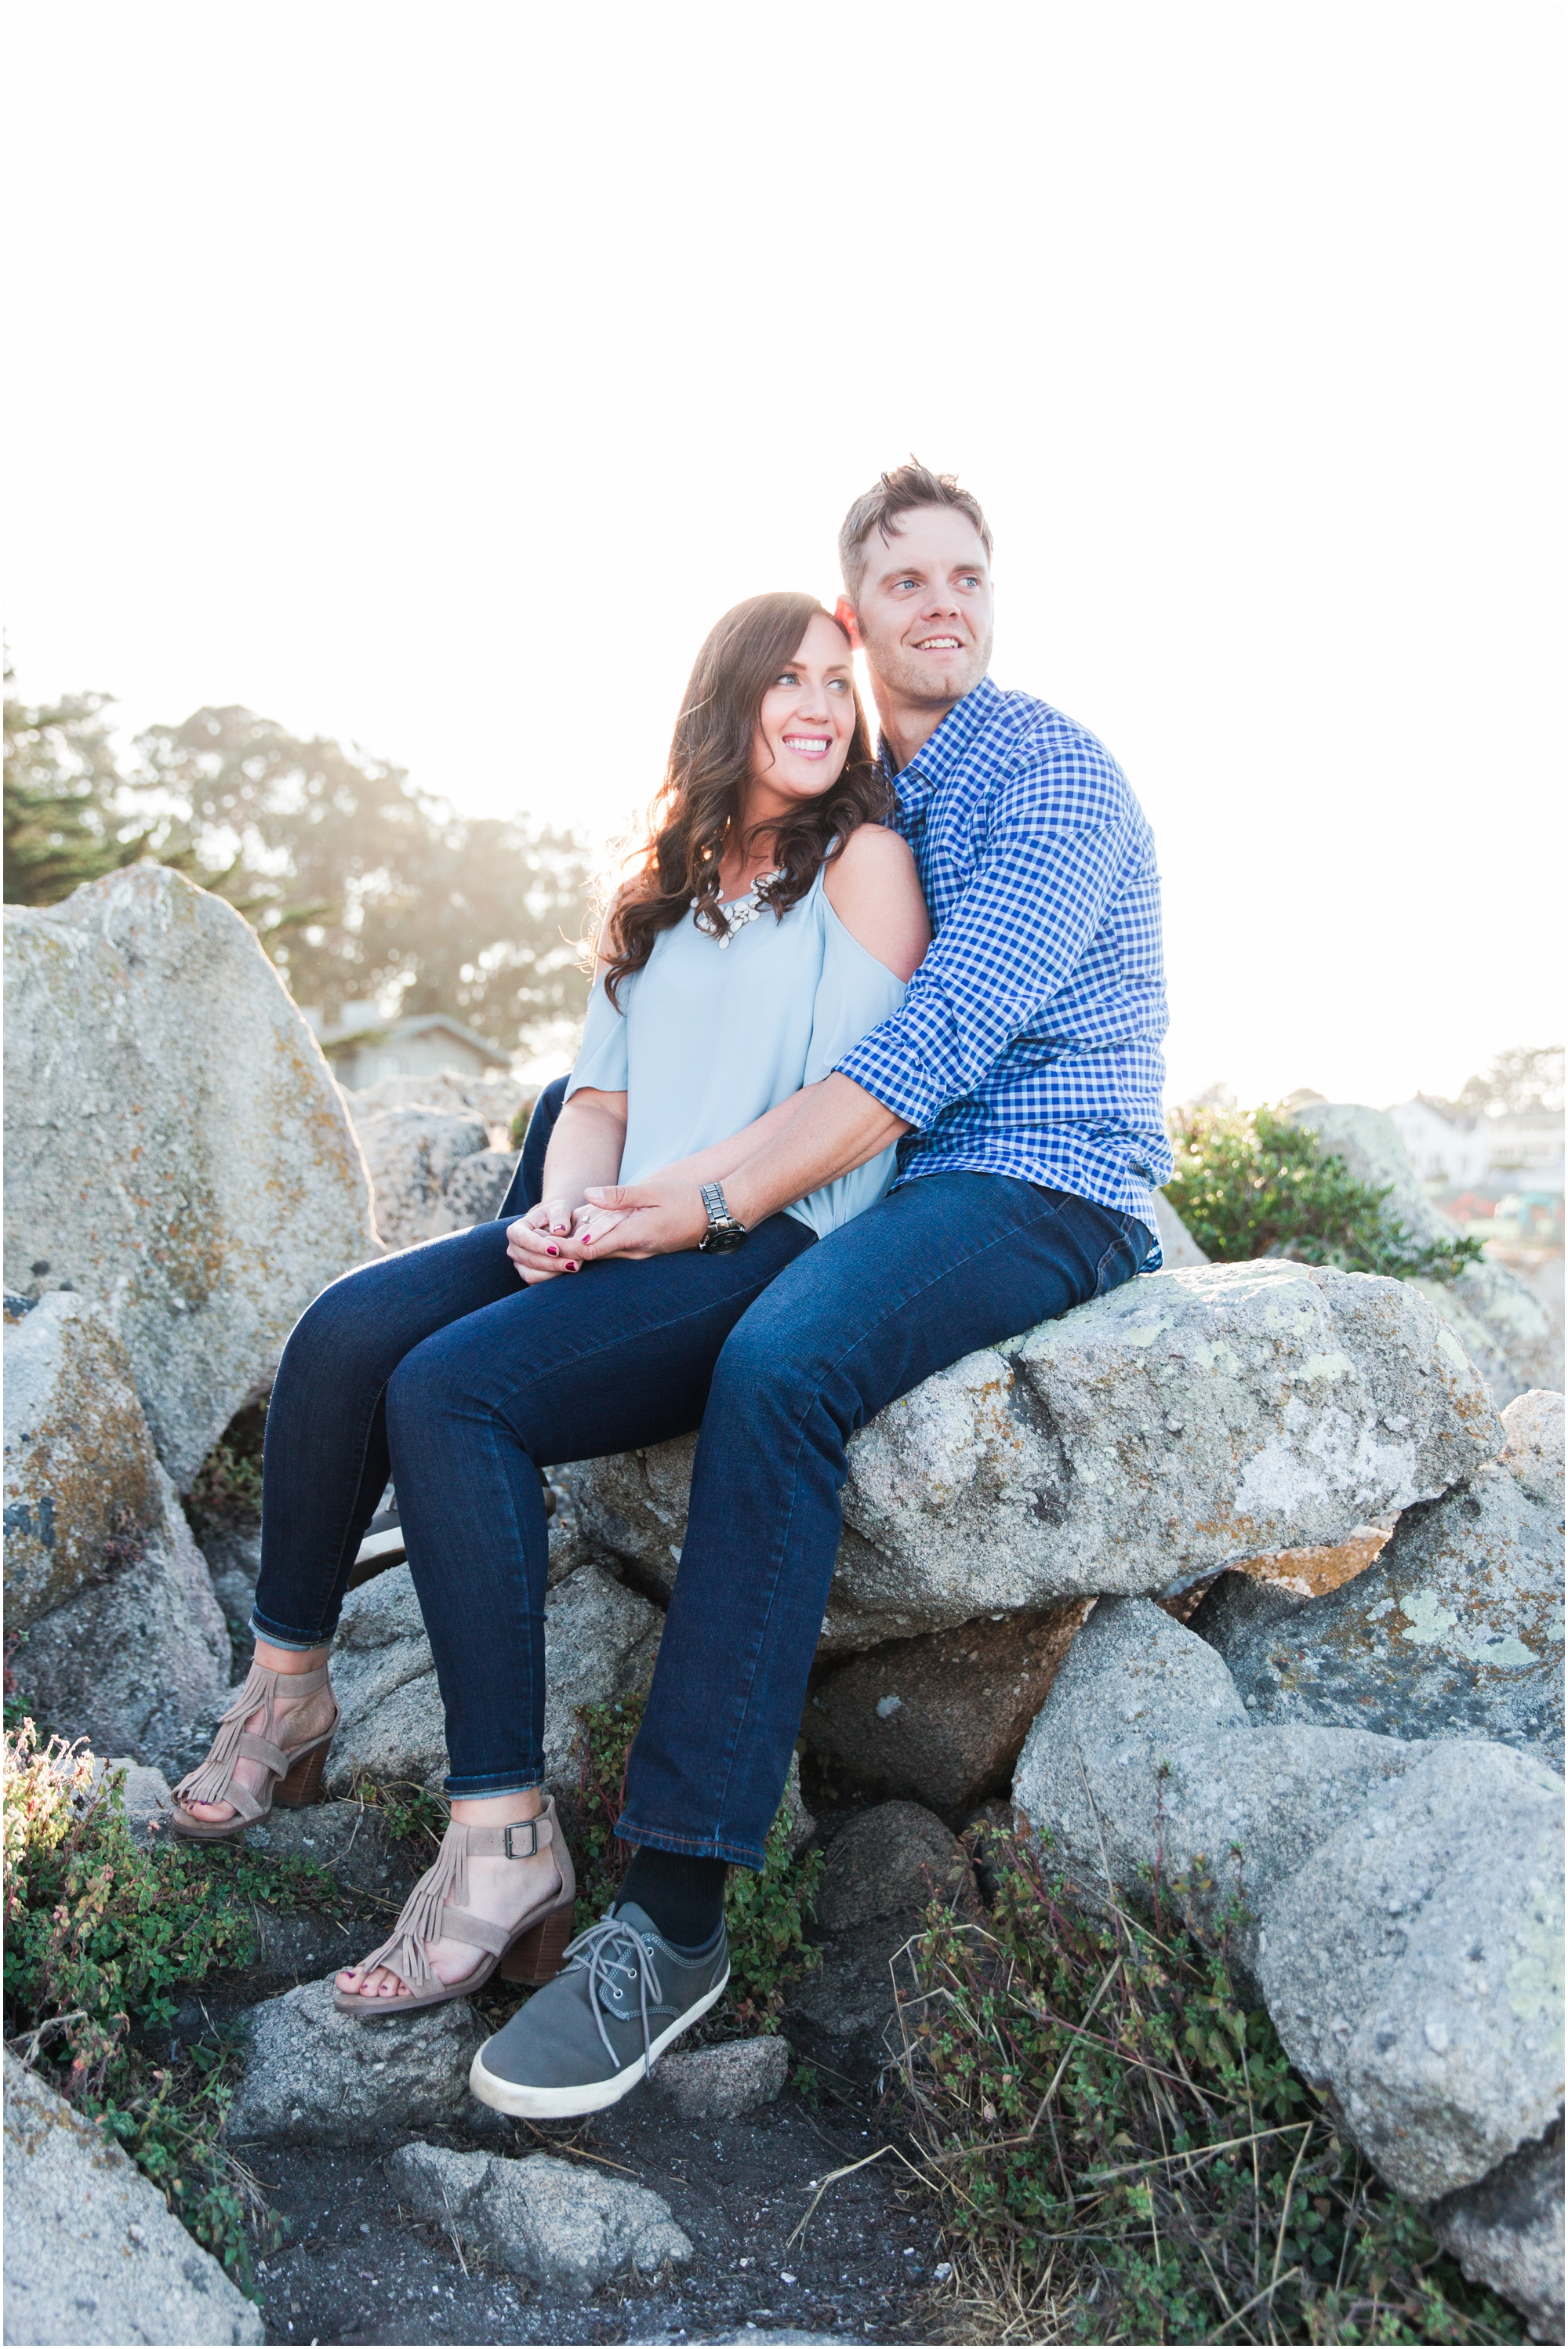 Berwick Park Monterey engagement pictures by Briana Calderon Photography_2381.jpg